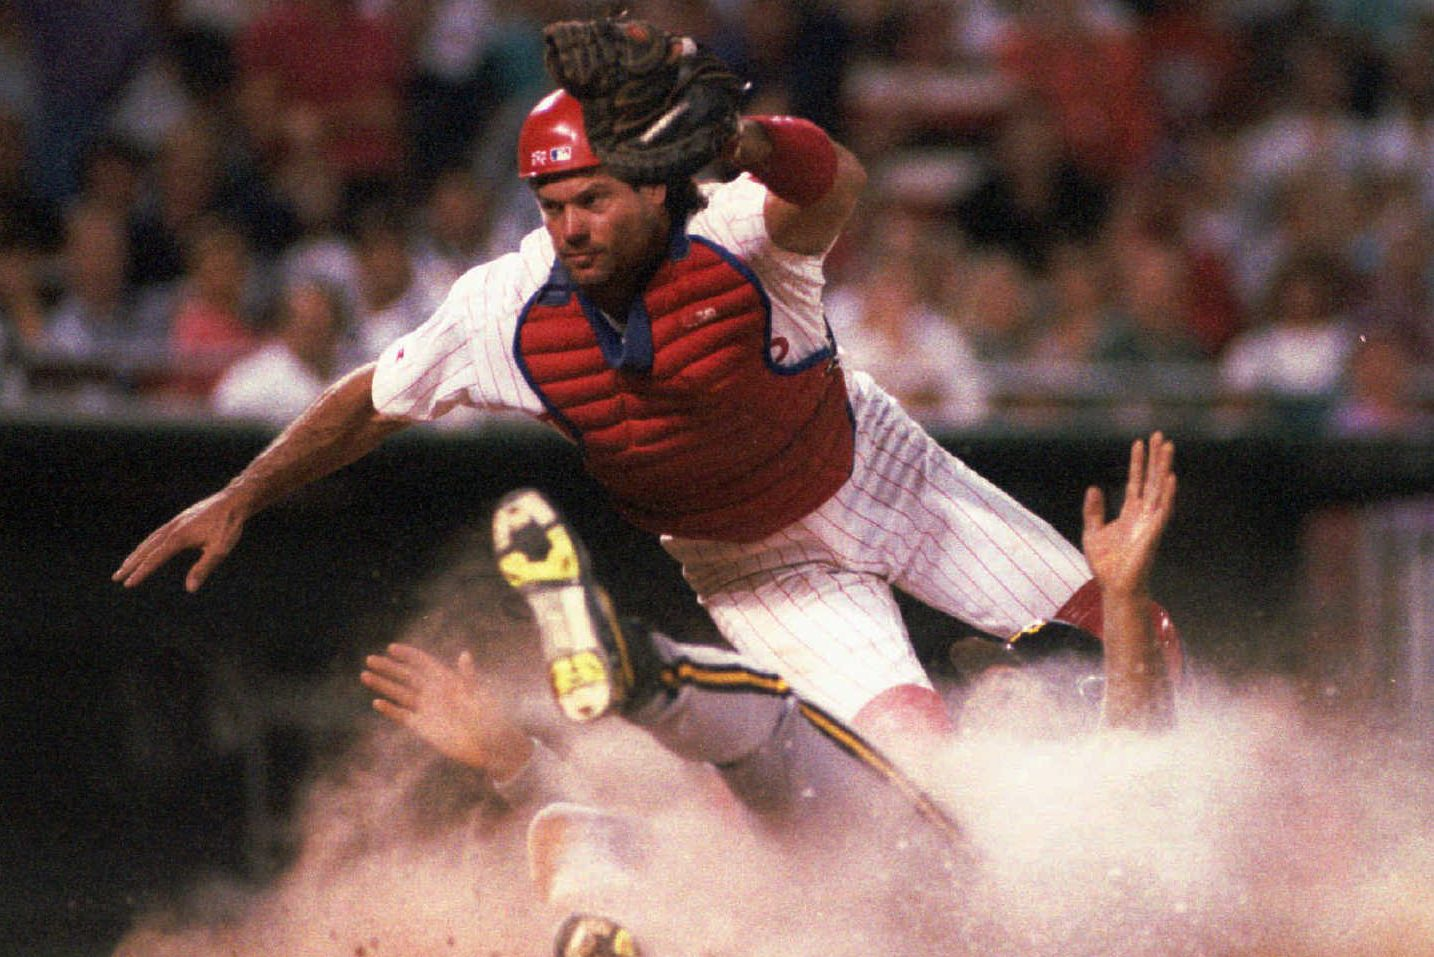 Darren Daulton was a three-time All-Star and the leader of the 1993 Phillies, one of the most popular teams in Philadelphia sports history.